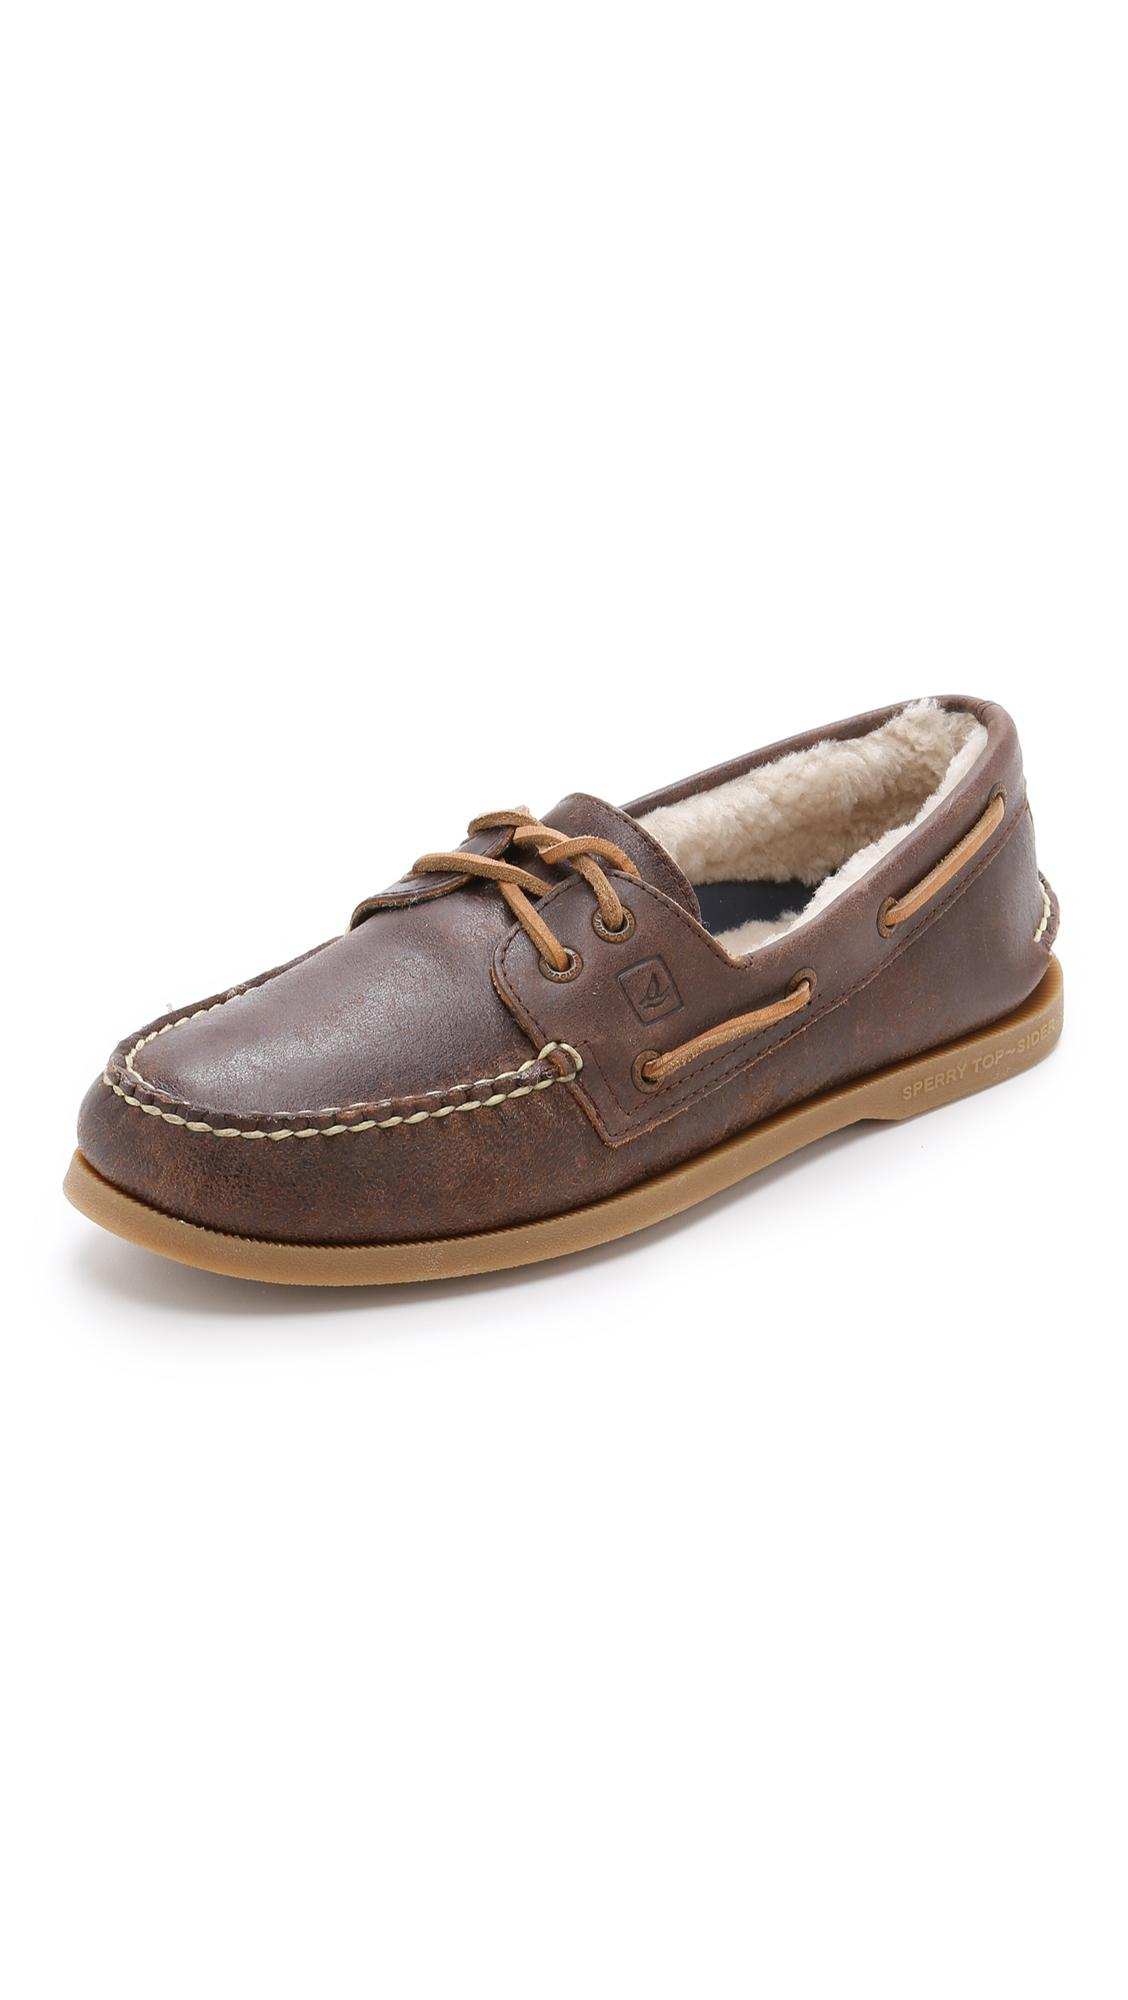 Sperry Shoes On Sale Australia